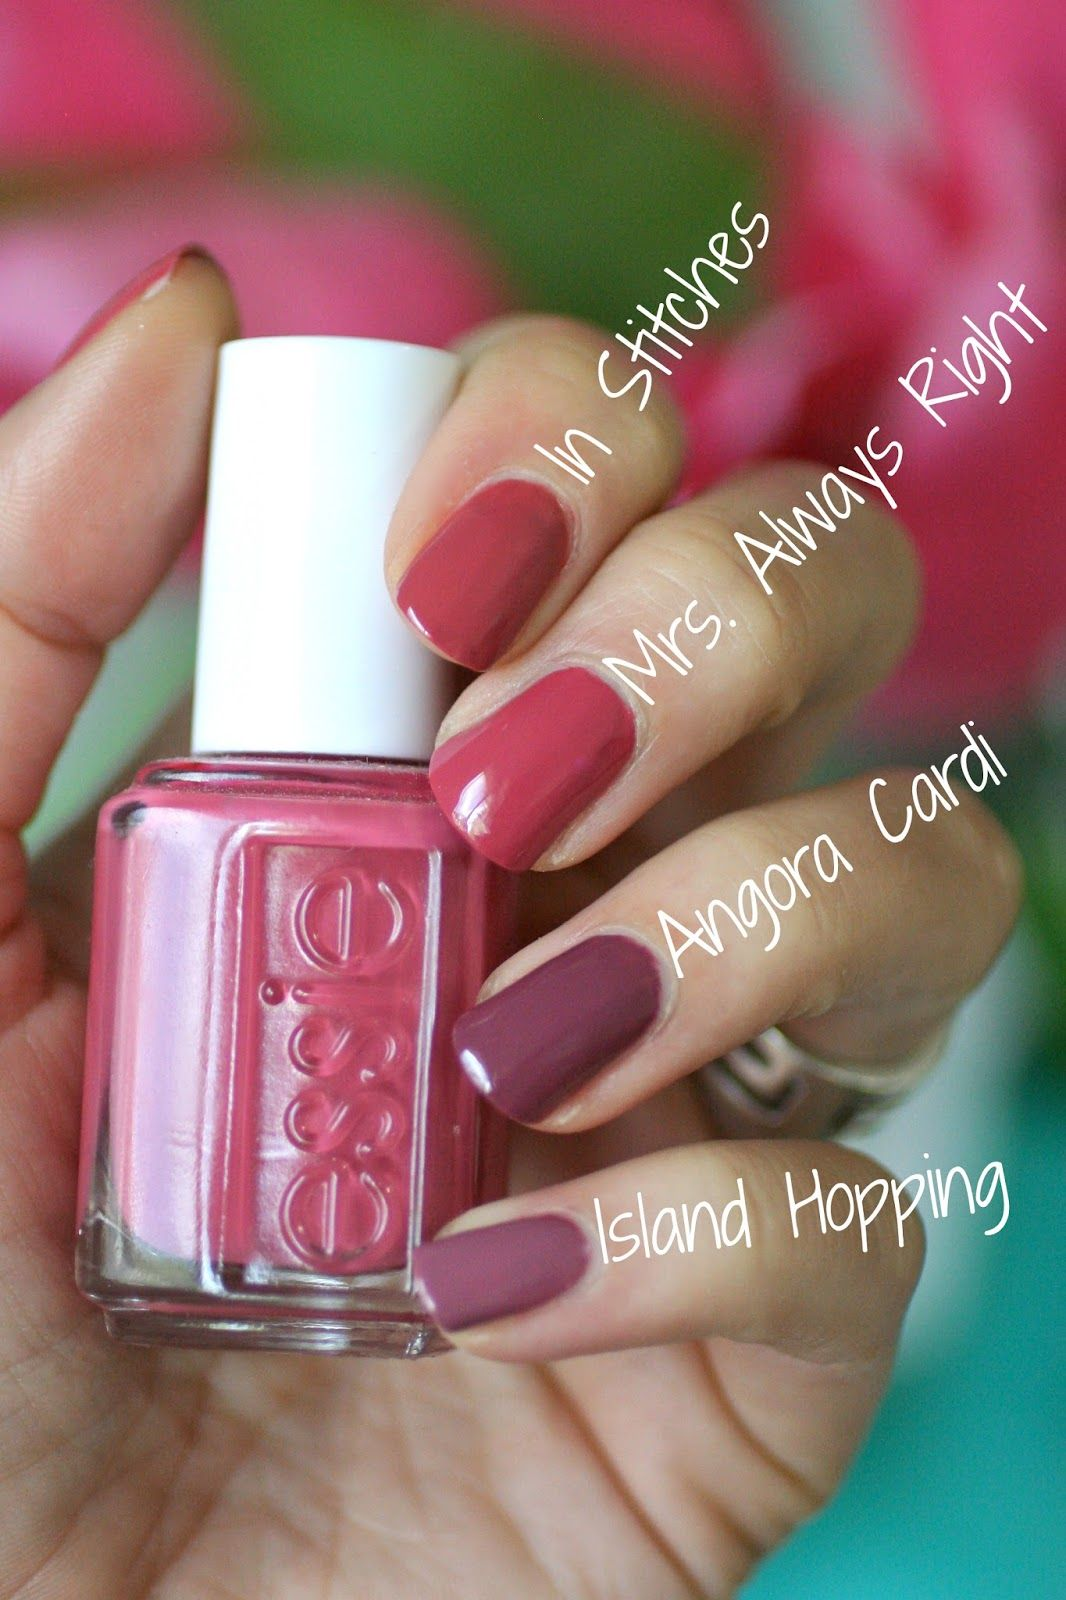 Sweet Cotton Candy Nail Colors and Designs | Pinterest | Envy ...